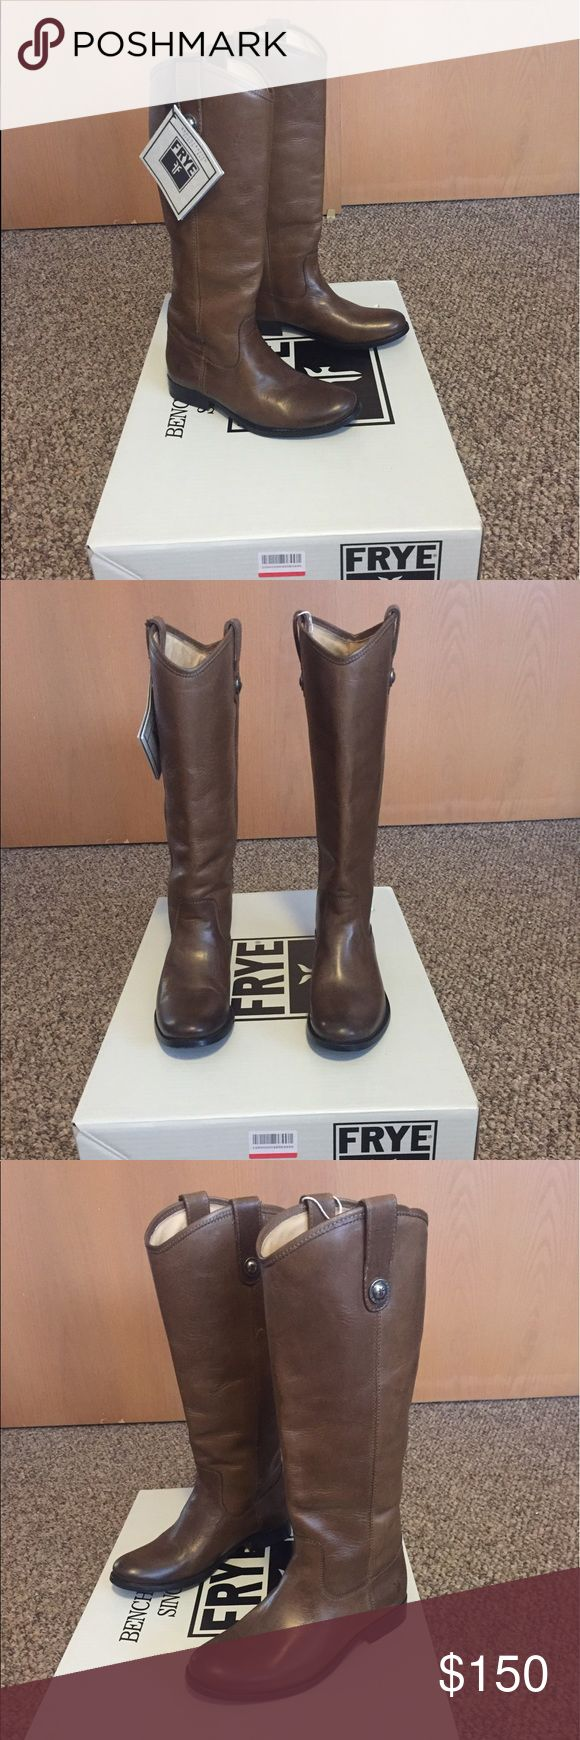 Melissa frye boots size 6 taupe new with box Never worn, brand new with box frye melissa boots Frye Shoes Ankle Boots & Booties